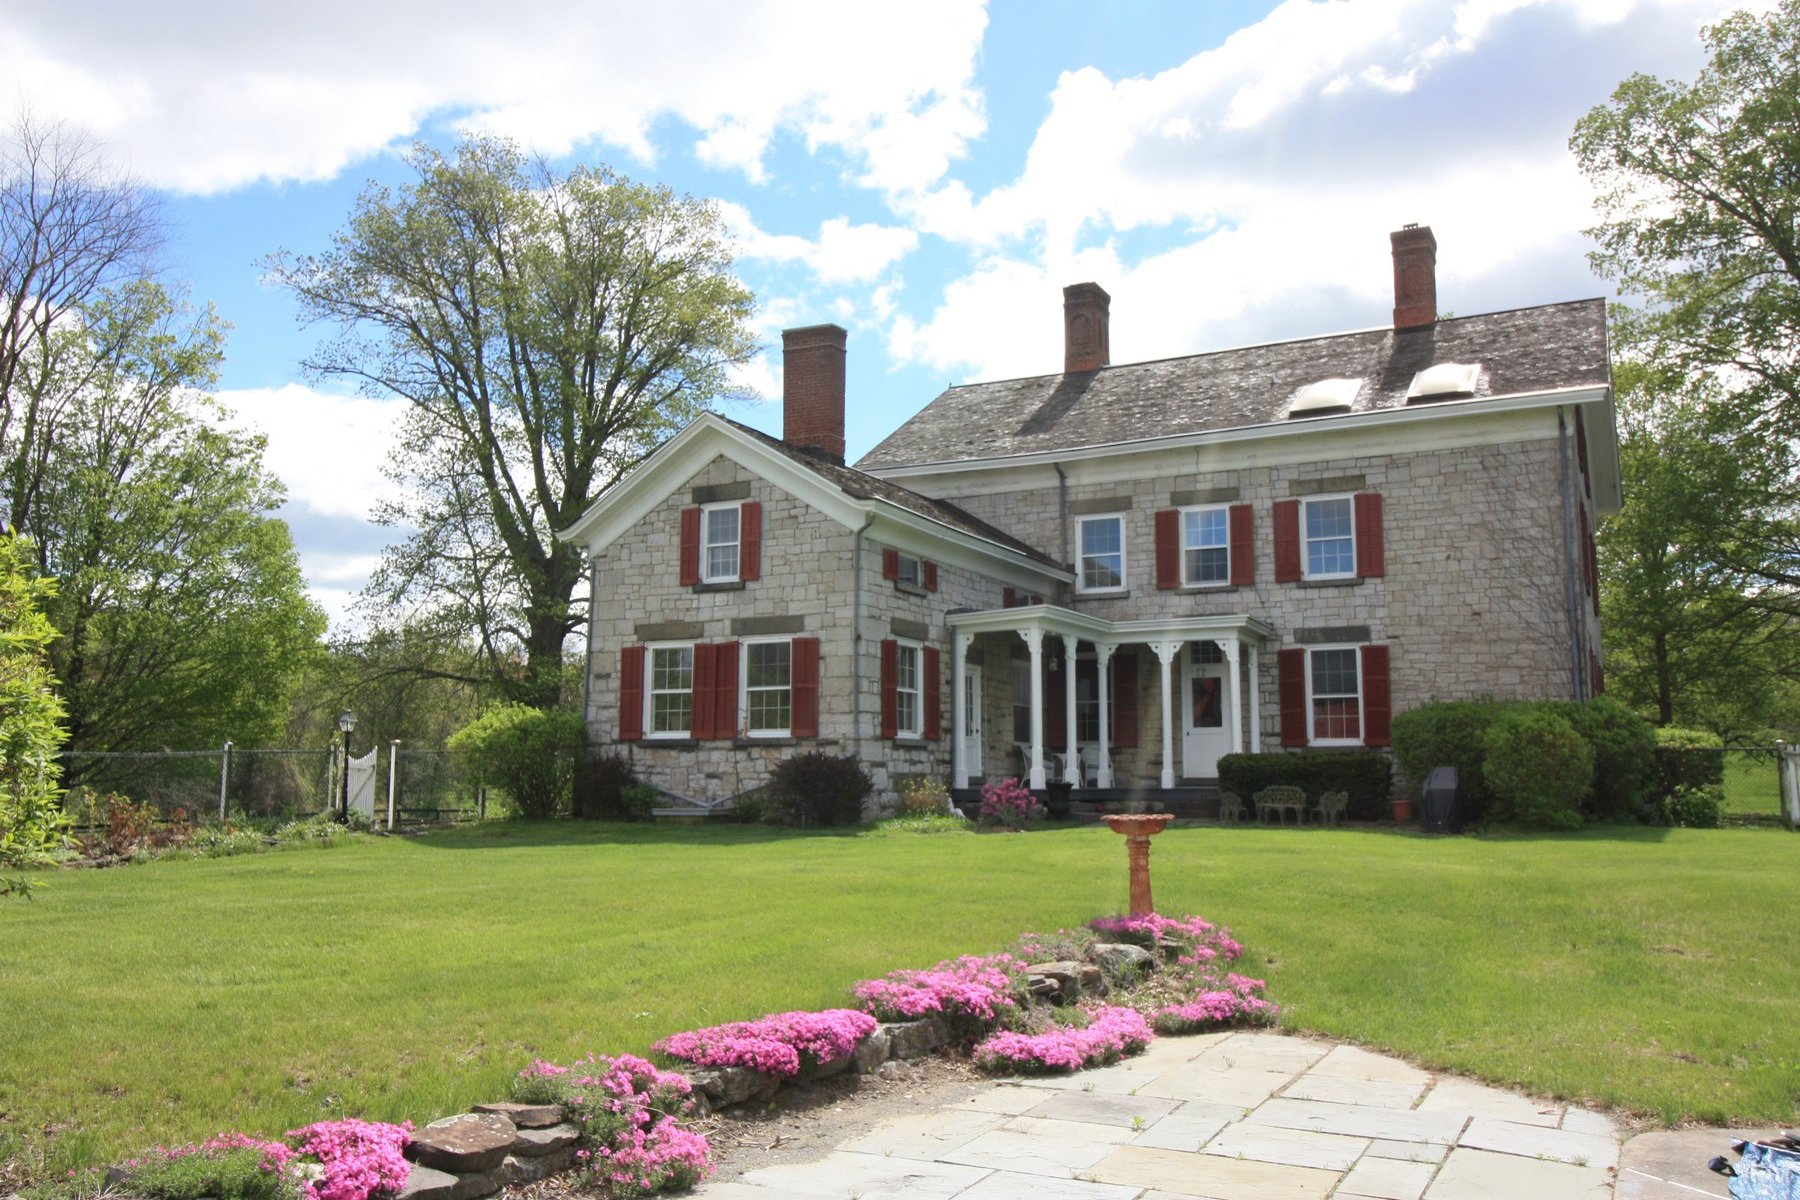 Additional photo for property listing at Historic 19th Century Stone Ridge Mansion 3050 Route 209 Stone Ridge, New York 12401 United States